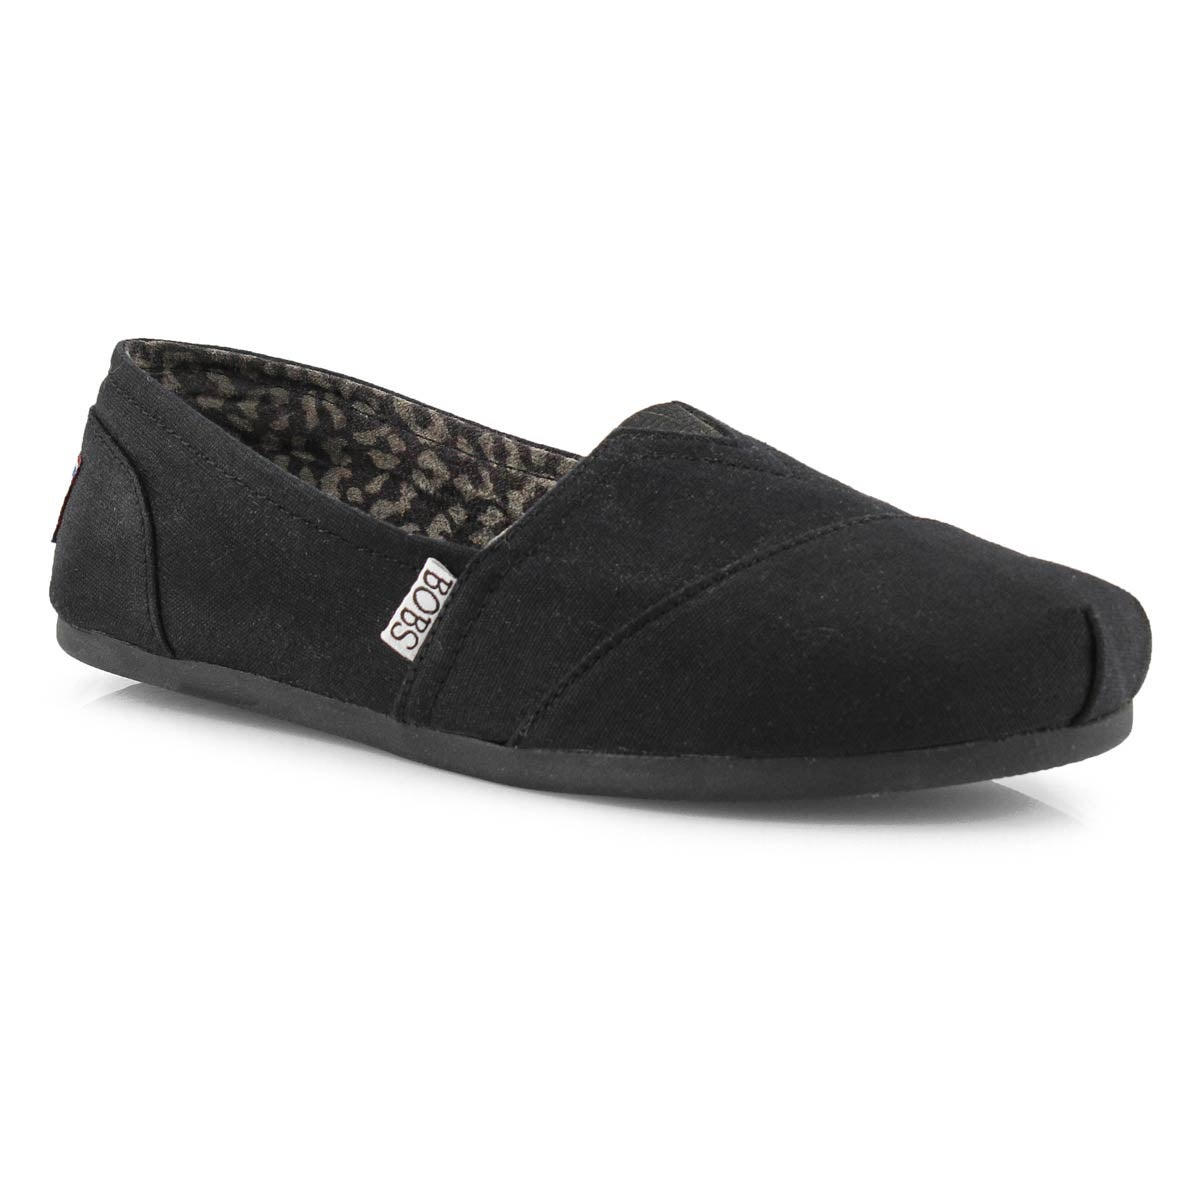 Lds Plush Peace& Love blk canvas slip on